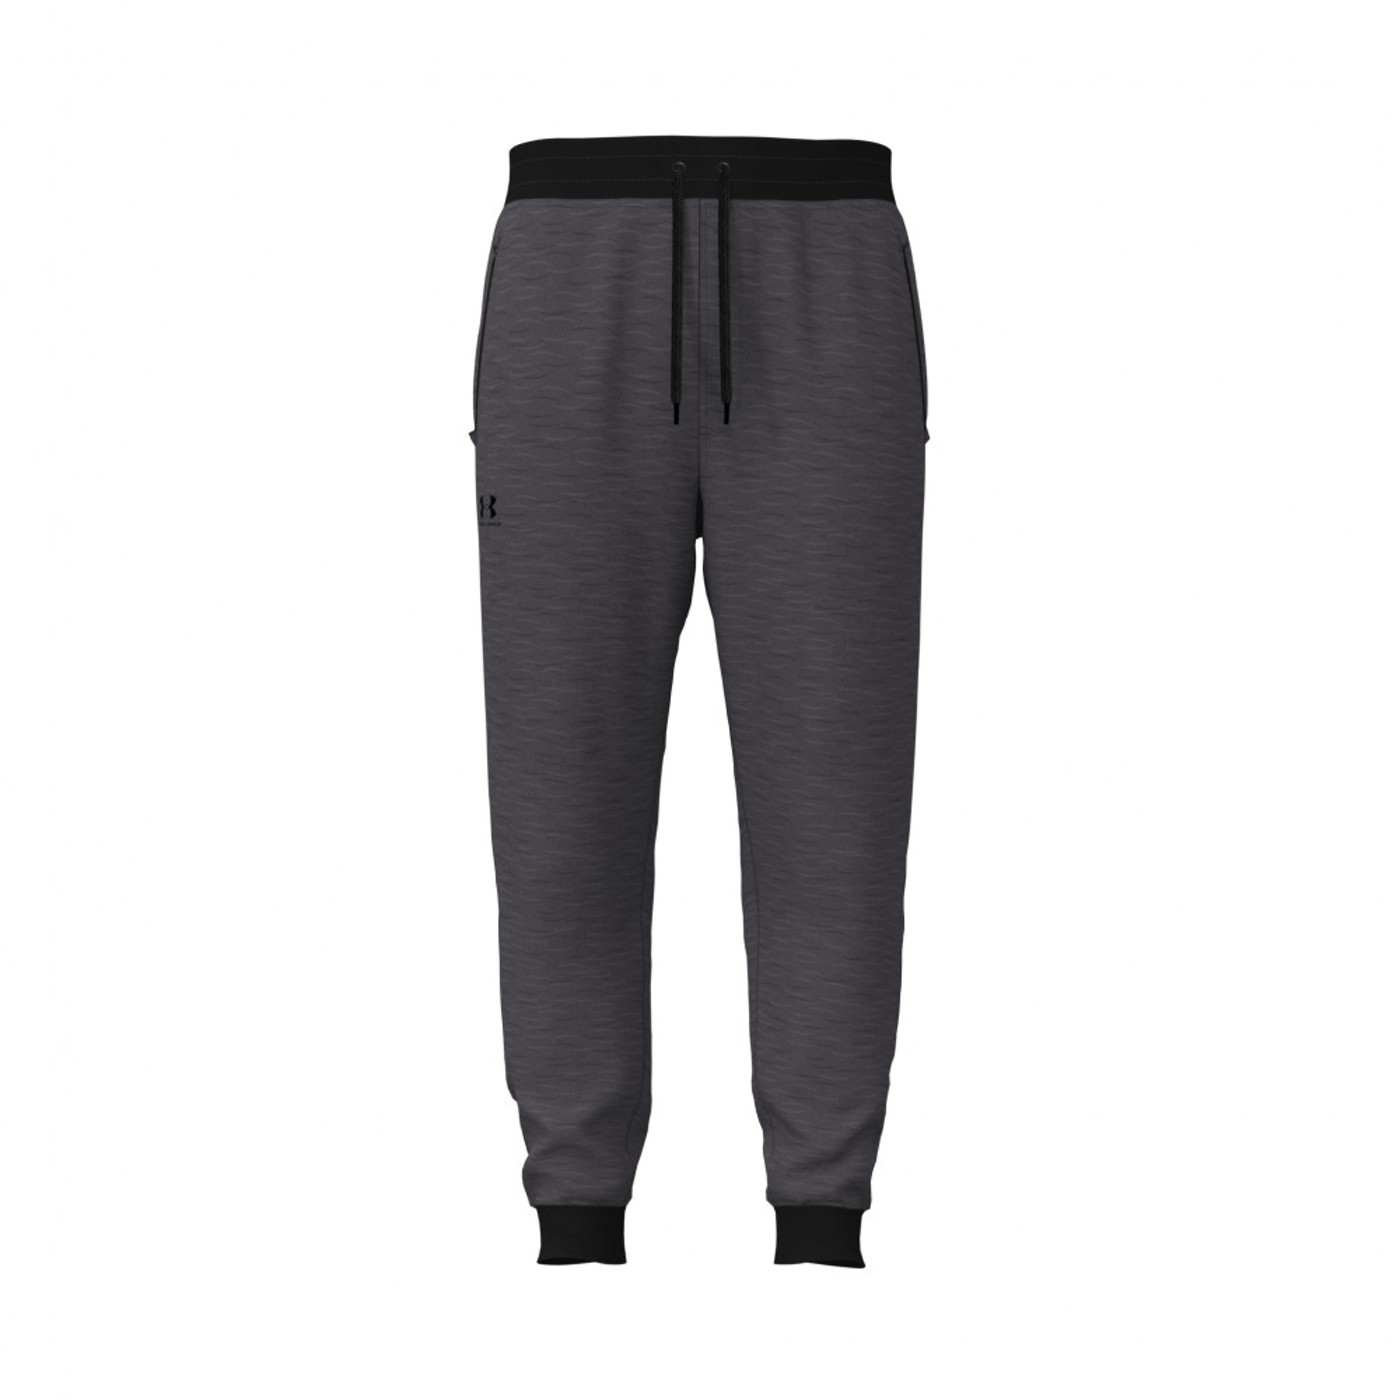 UNDER ARMOUR SPORTSTYLE TRICOT JOGGER-GRY,S - Herren